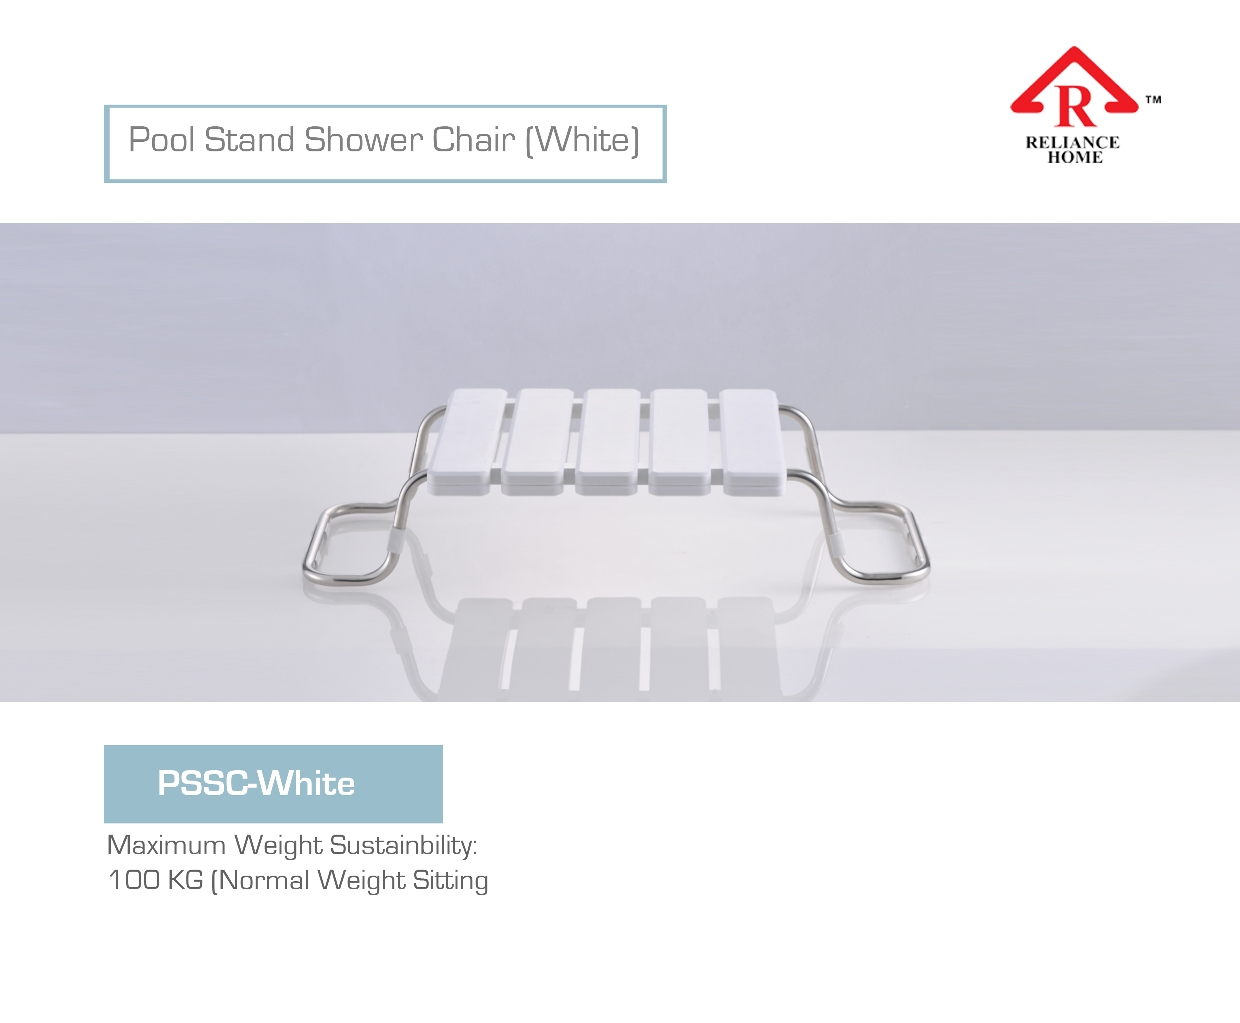 PSSCwhite